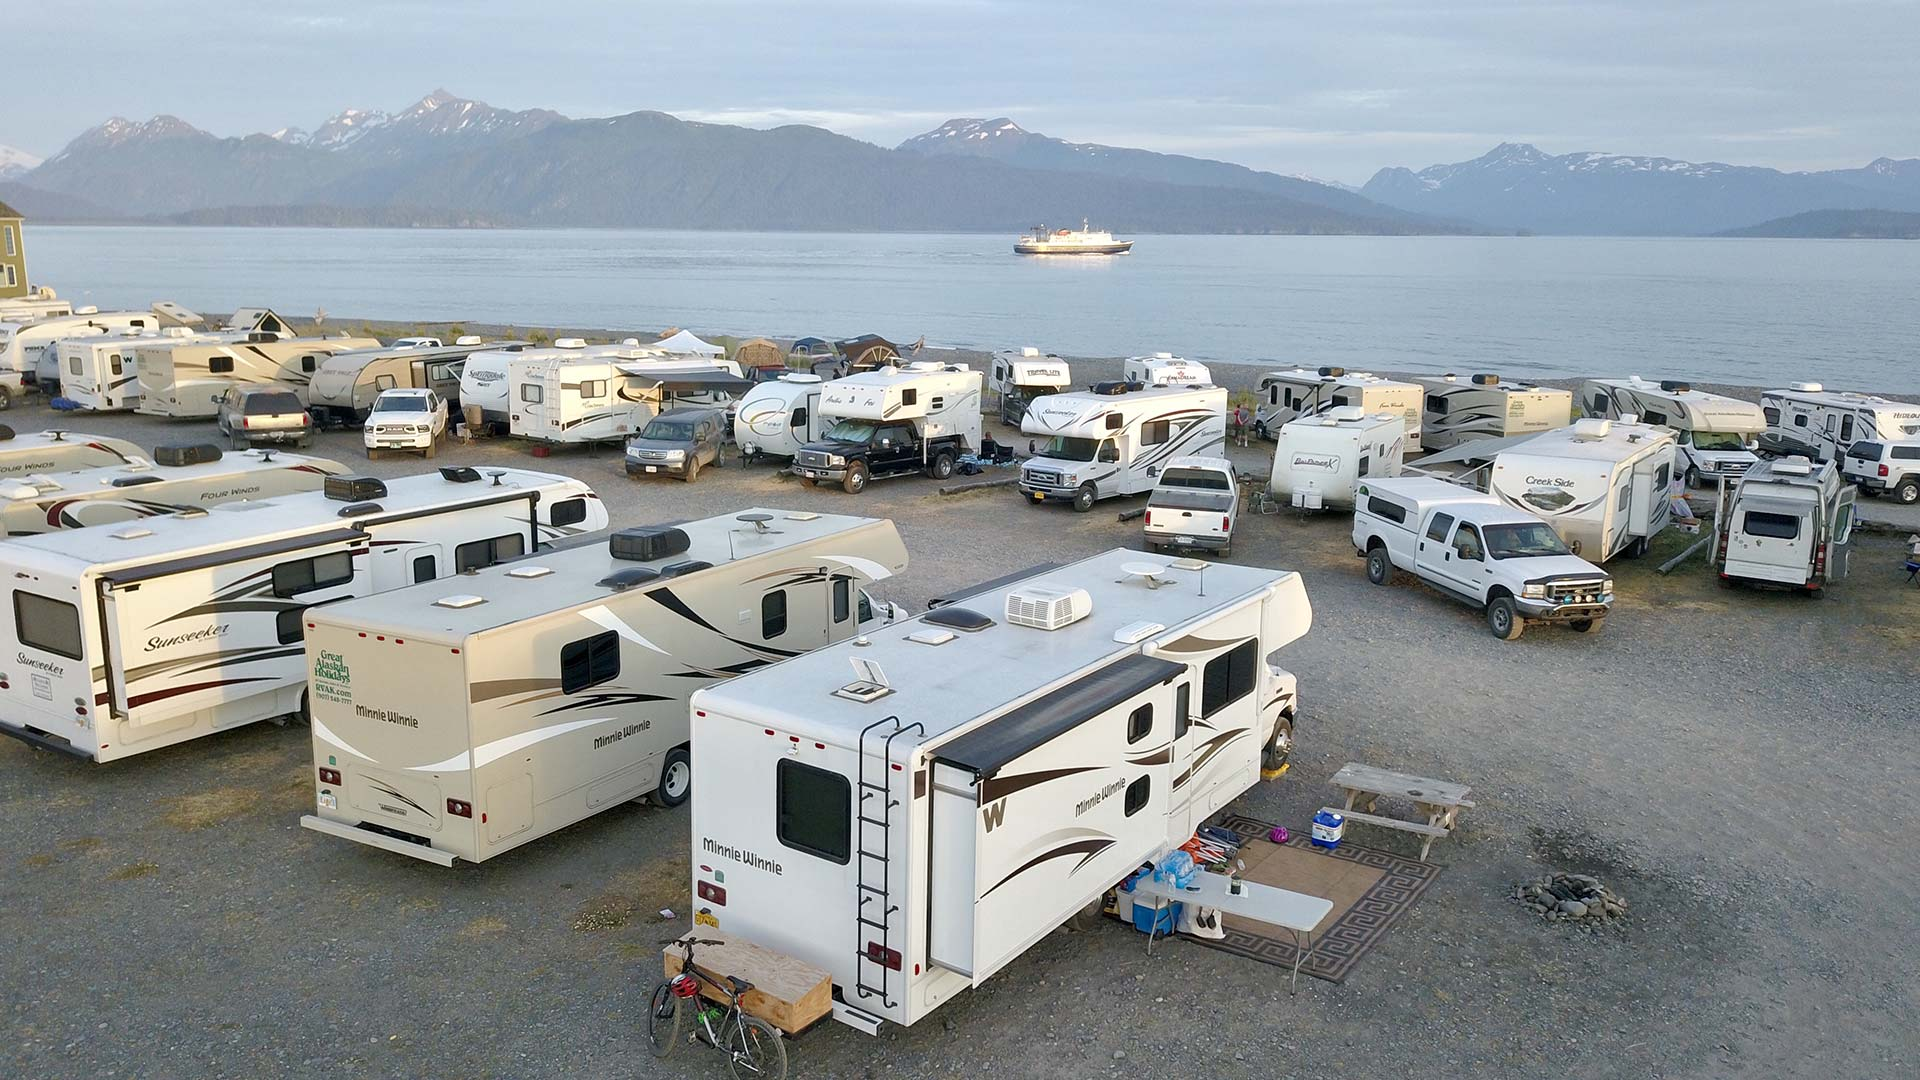 Off to Sea at Homer Spit Campground by Kevin Palmatier